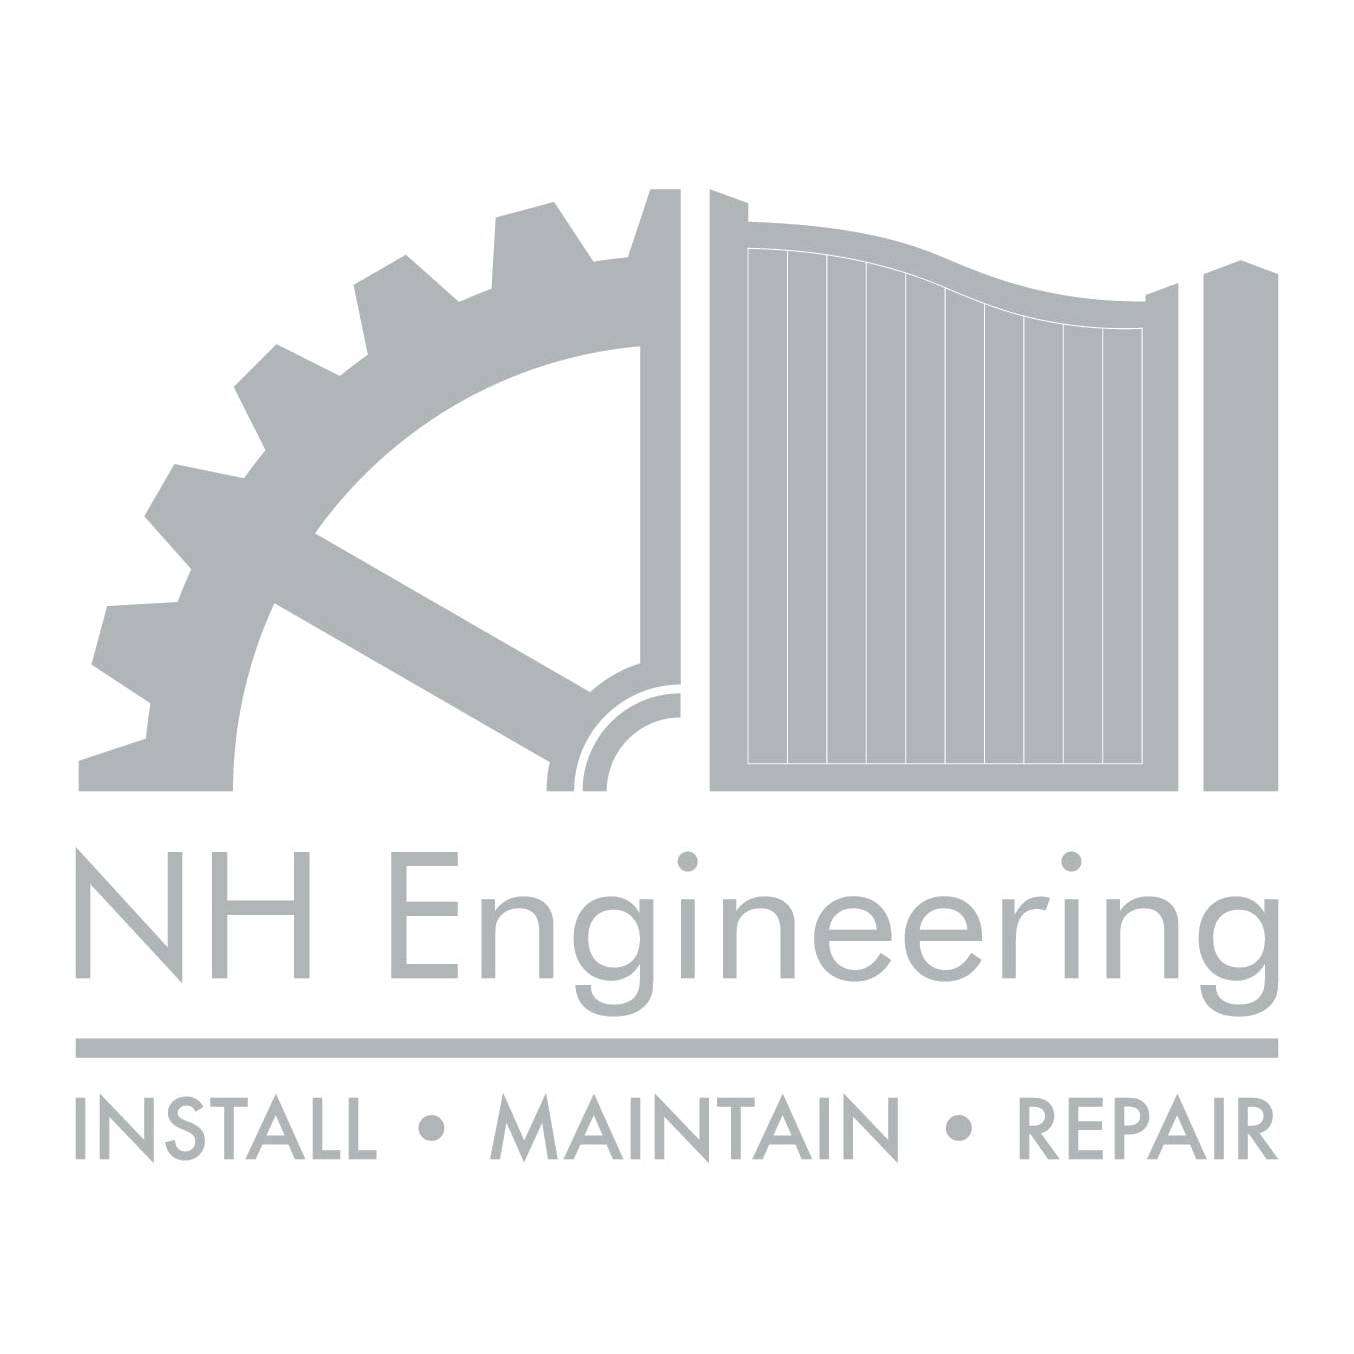 NH Engineering - Farnborough, Hampshire  - 07453 286885 | ShowMeLocal.com